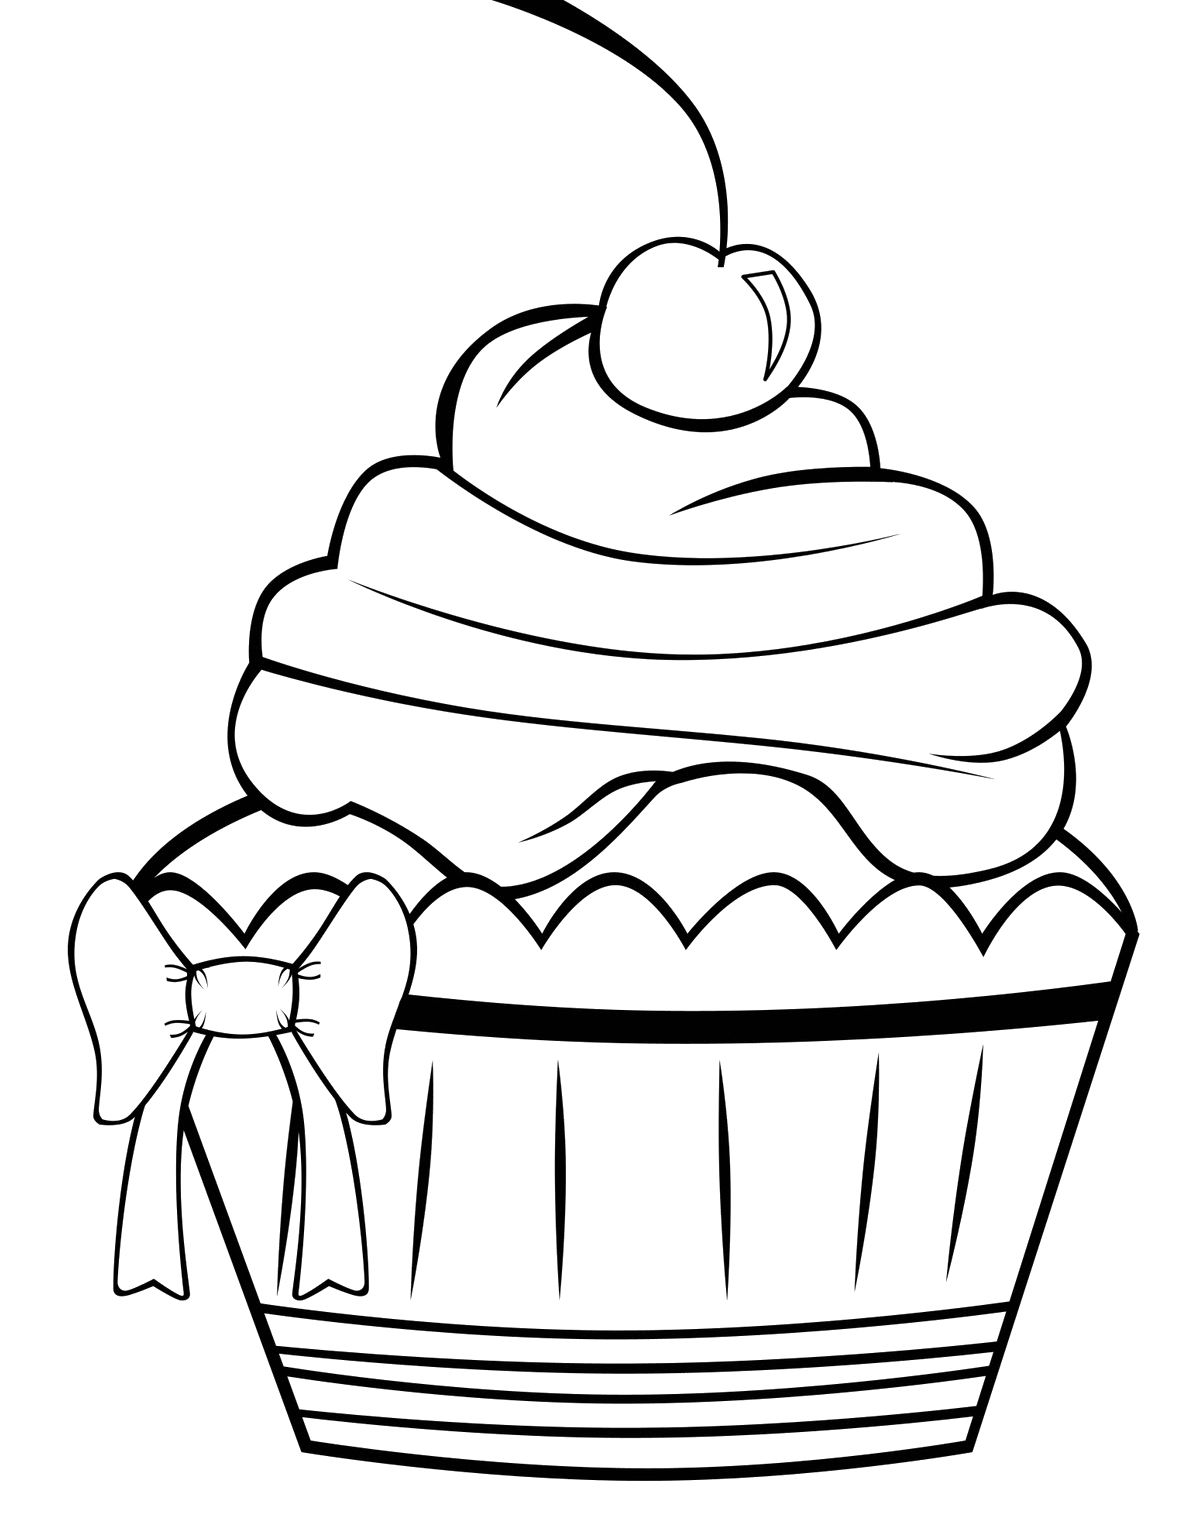 The Cupcake Decorate With Ribbon Coloring Pages | dibujos 3 ...